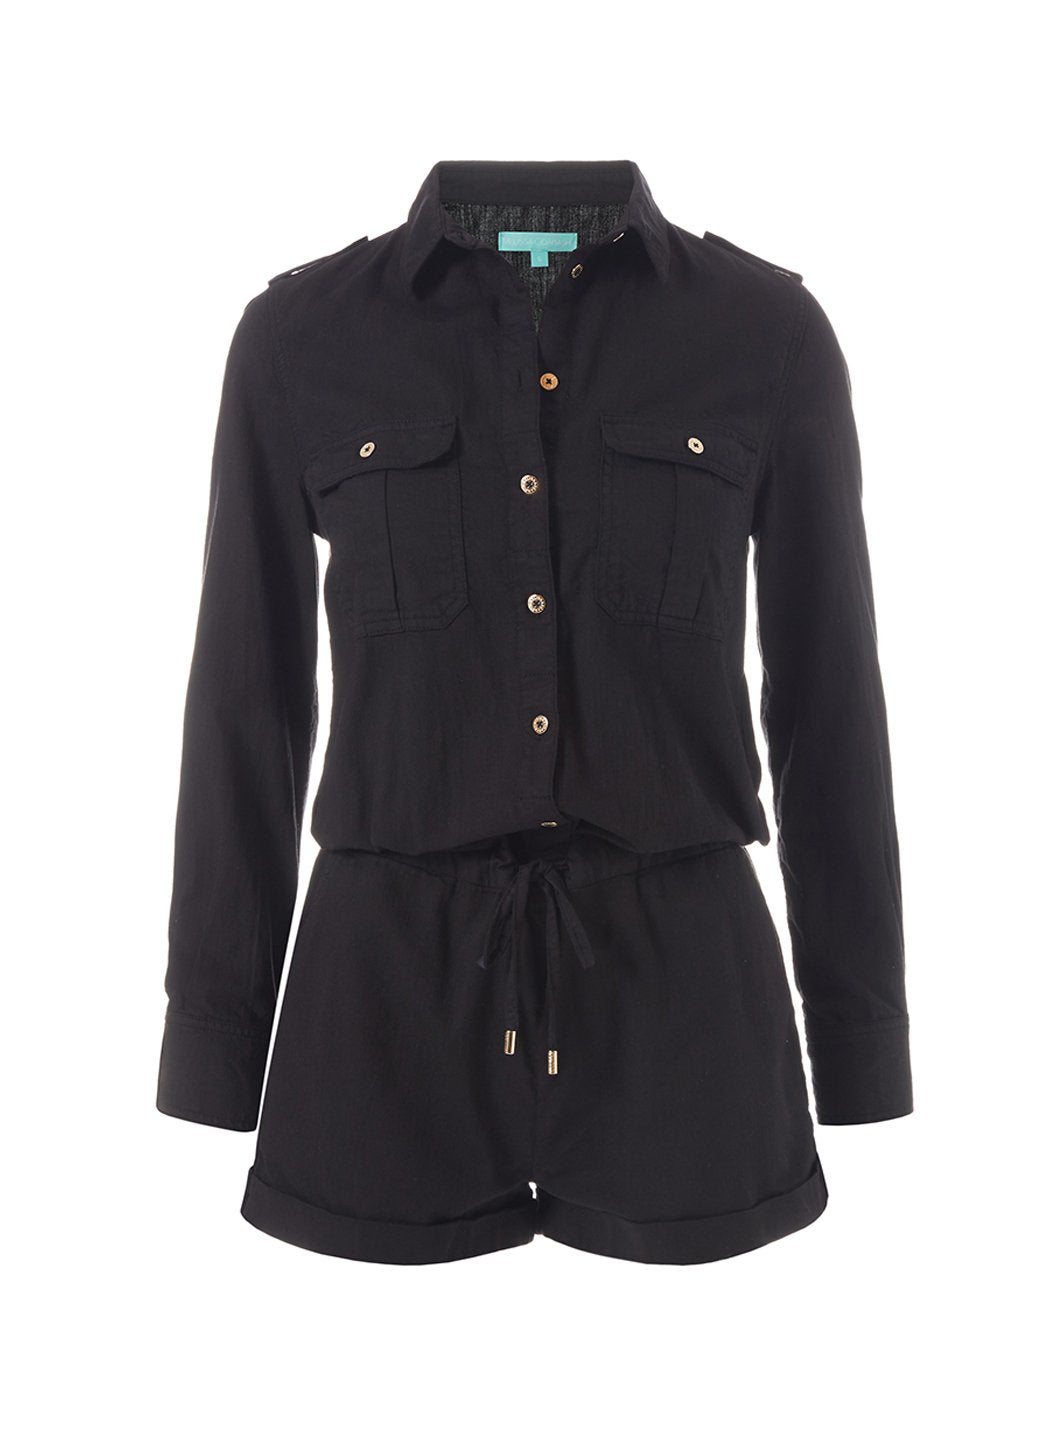 Honour Black Playsuit